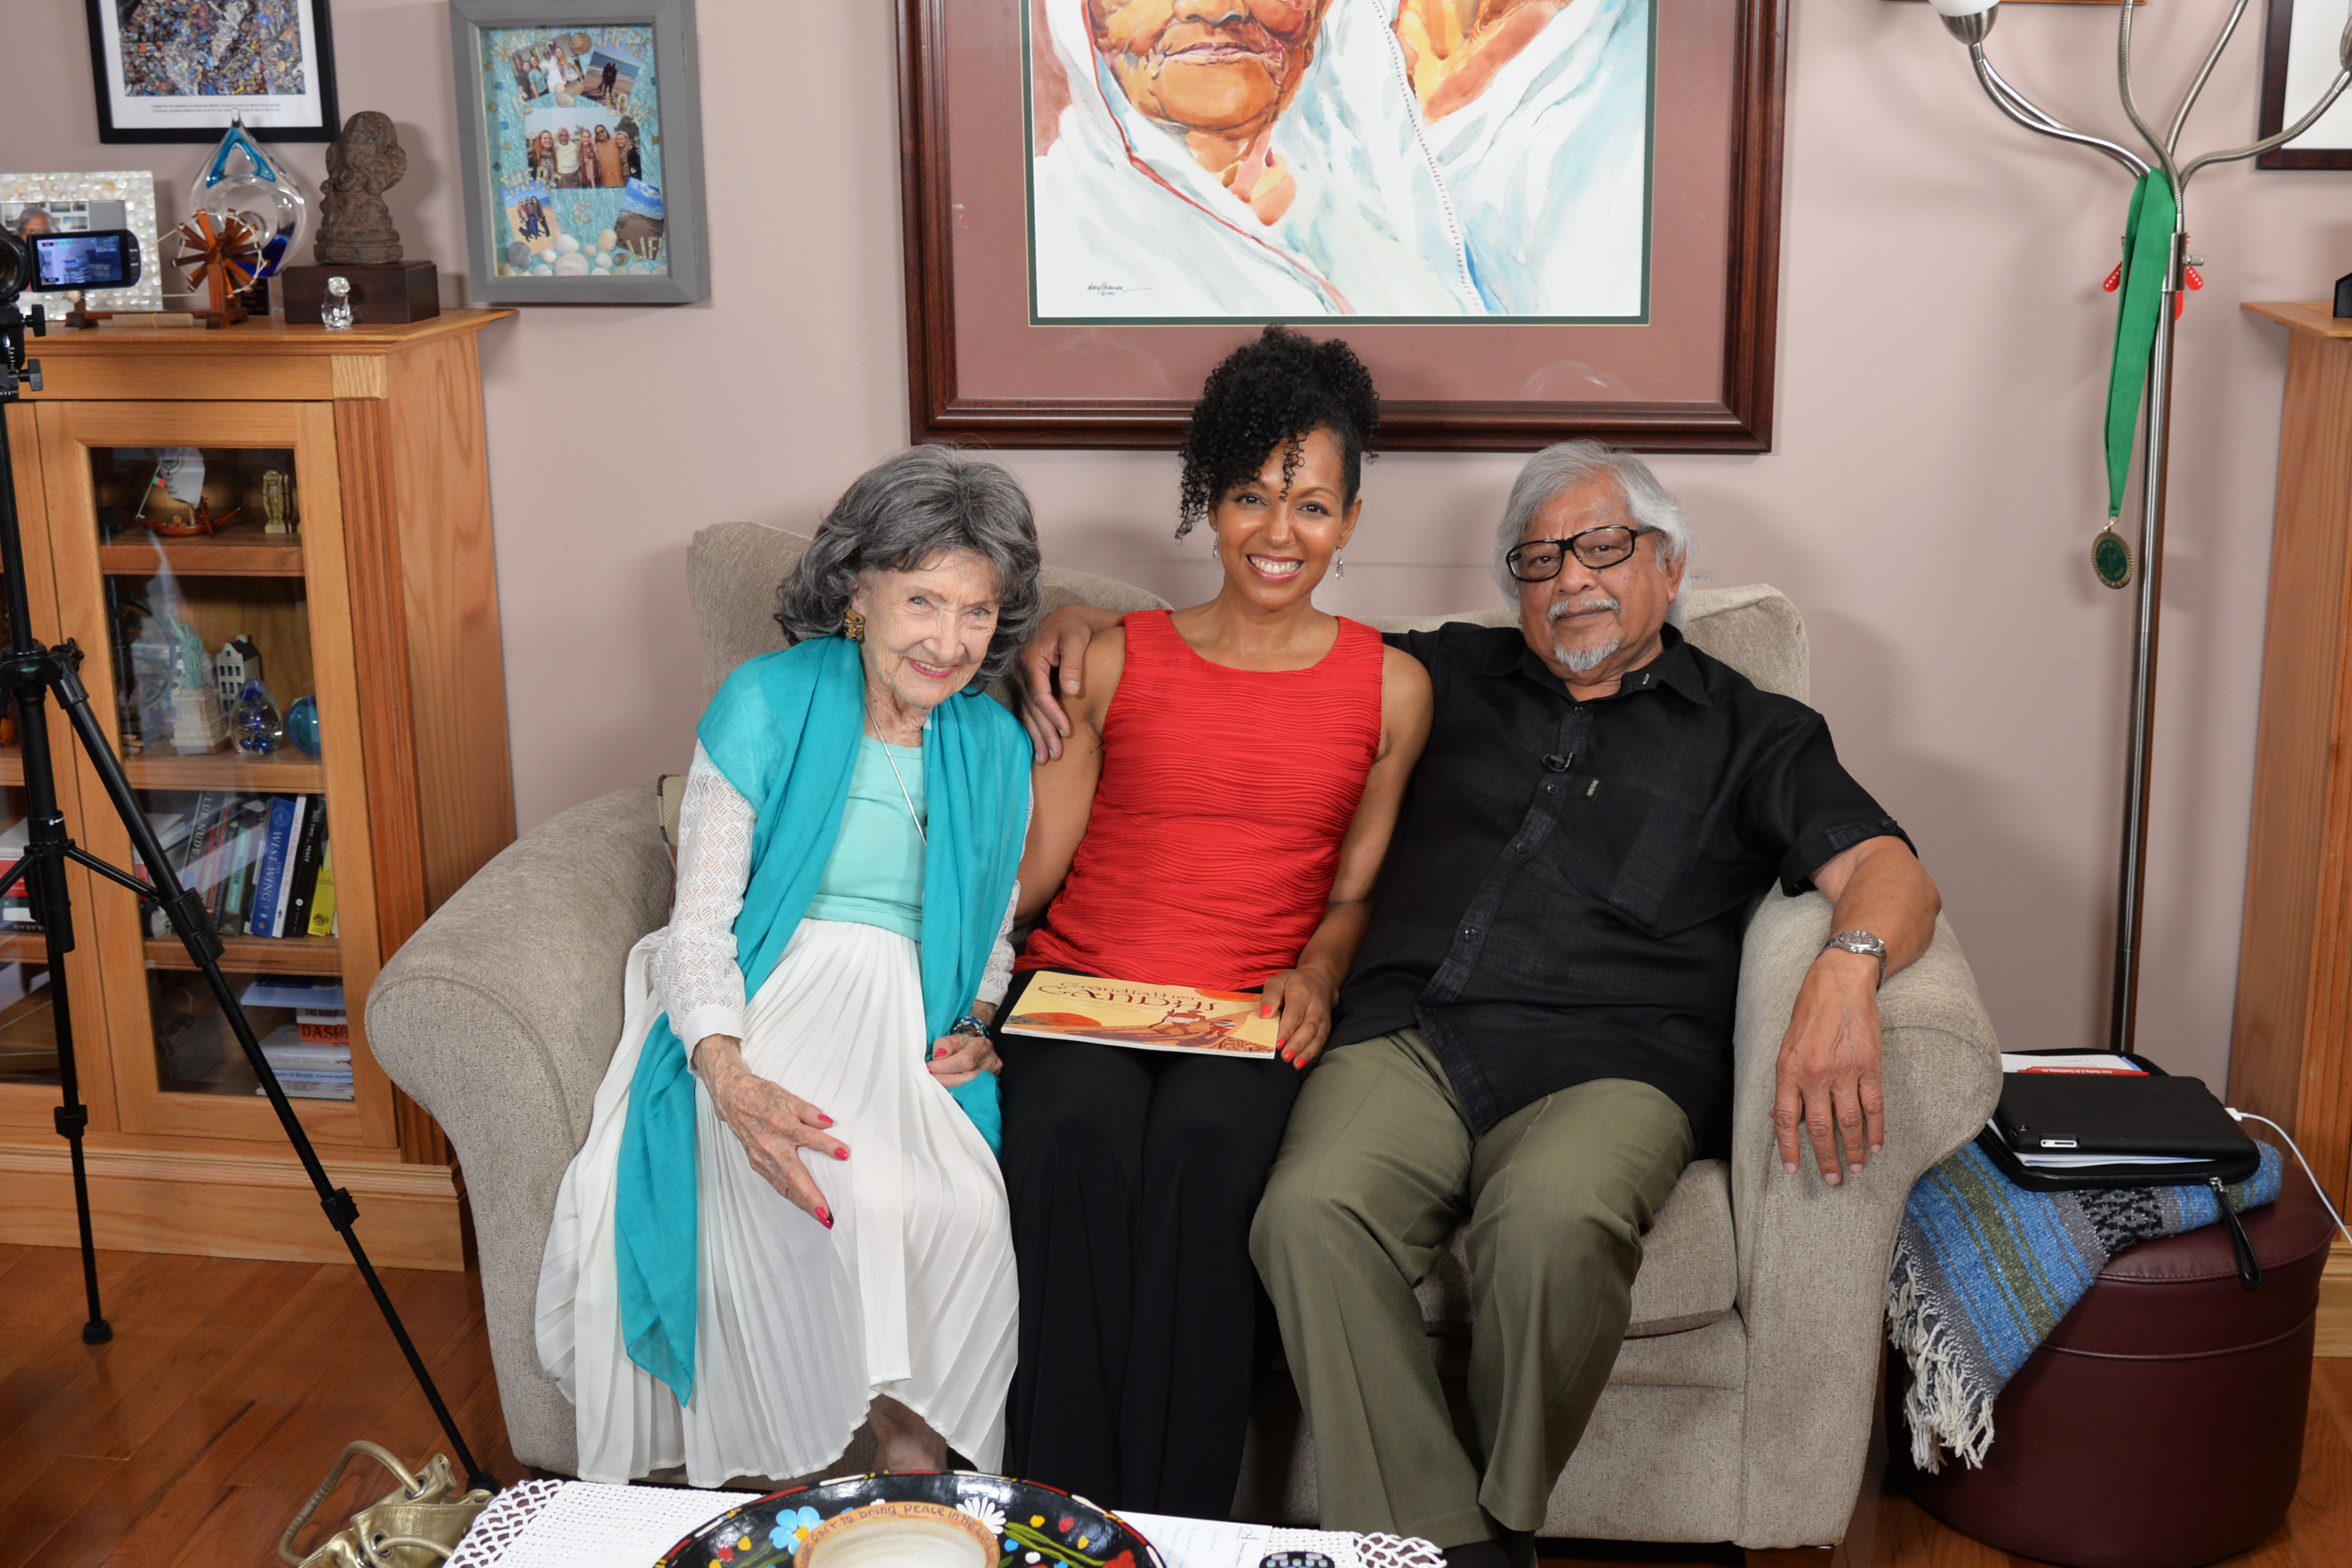 96-year-old yoga master Tao Porchon-Lynch, Teresa Kay-Aba Kennedy and Arun Gandhi in his home in Rochester, NY - July 9, 2015